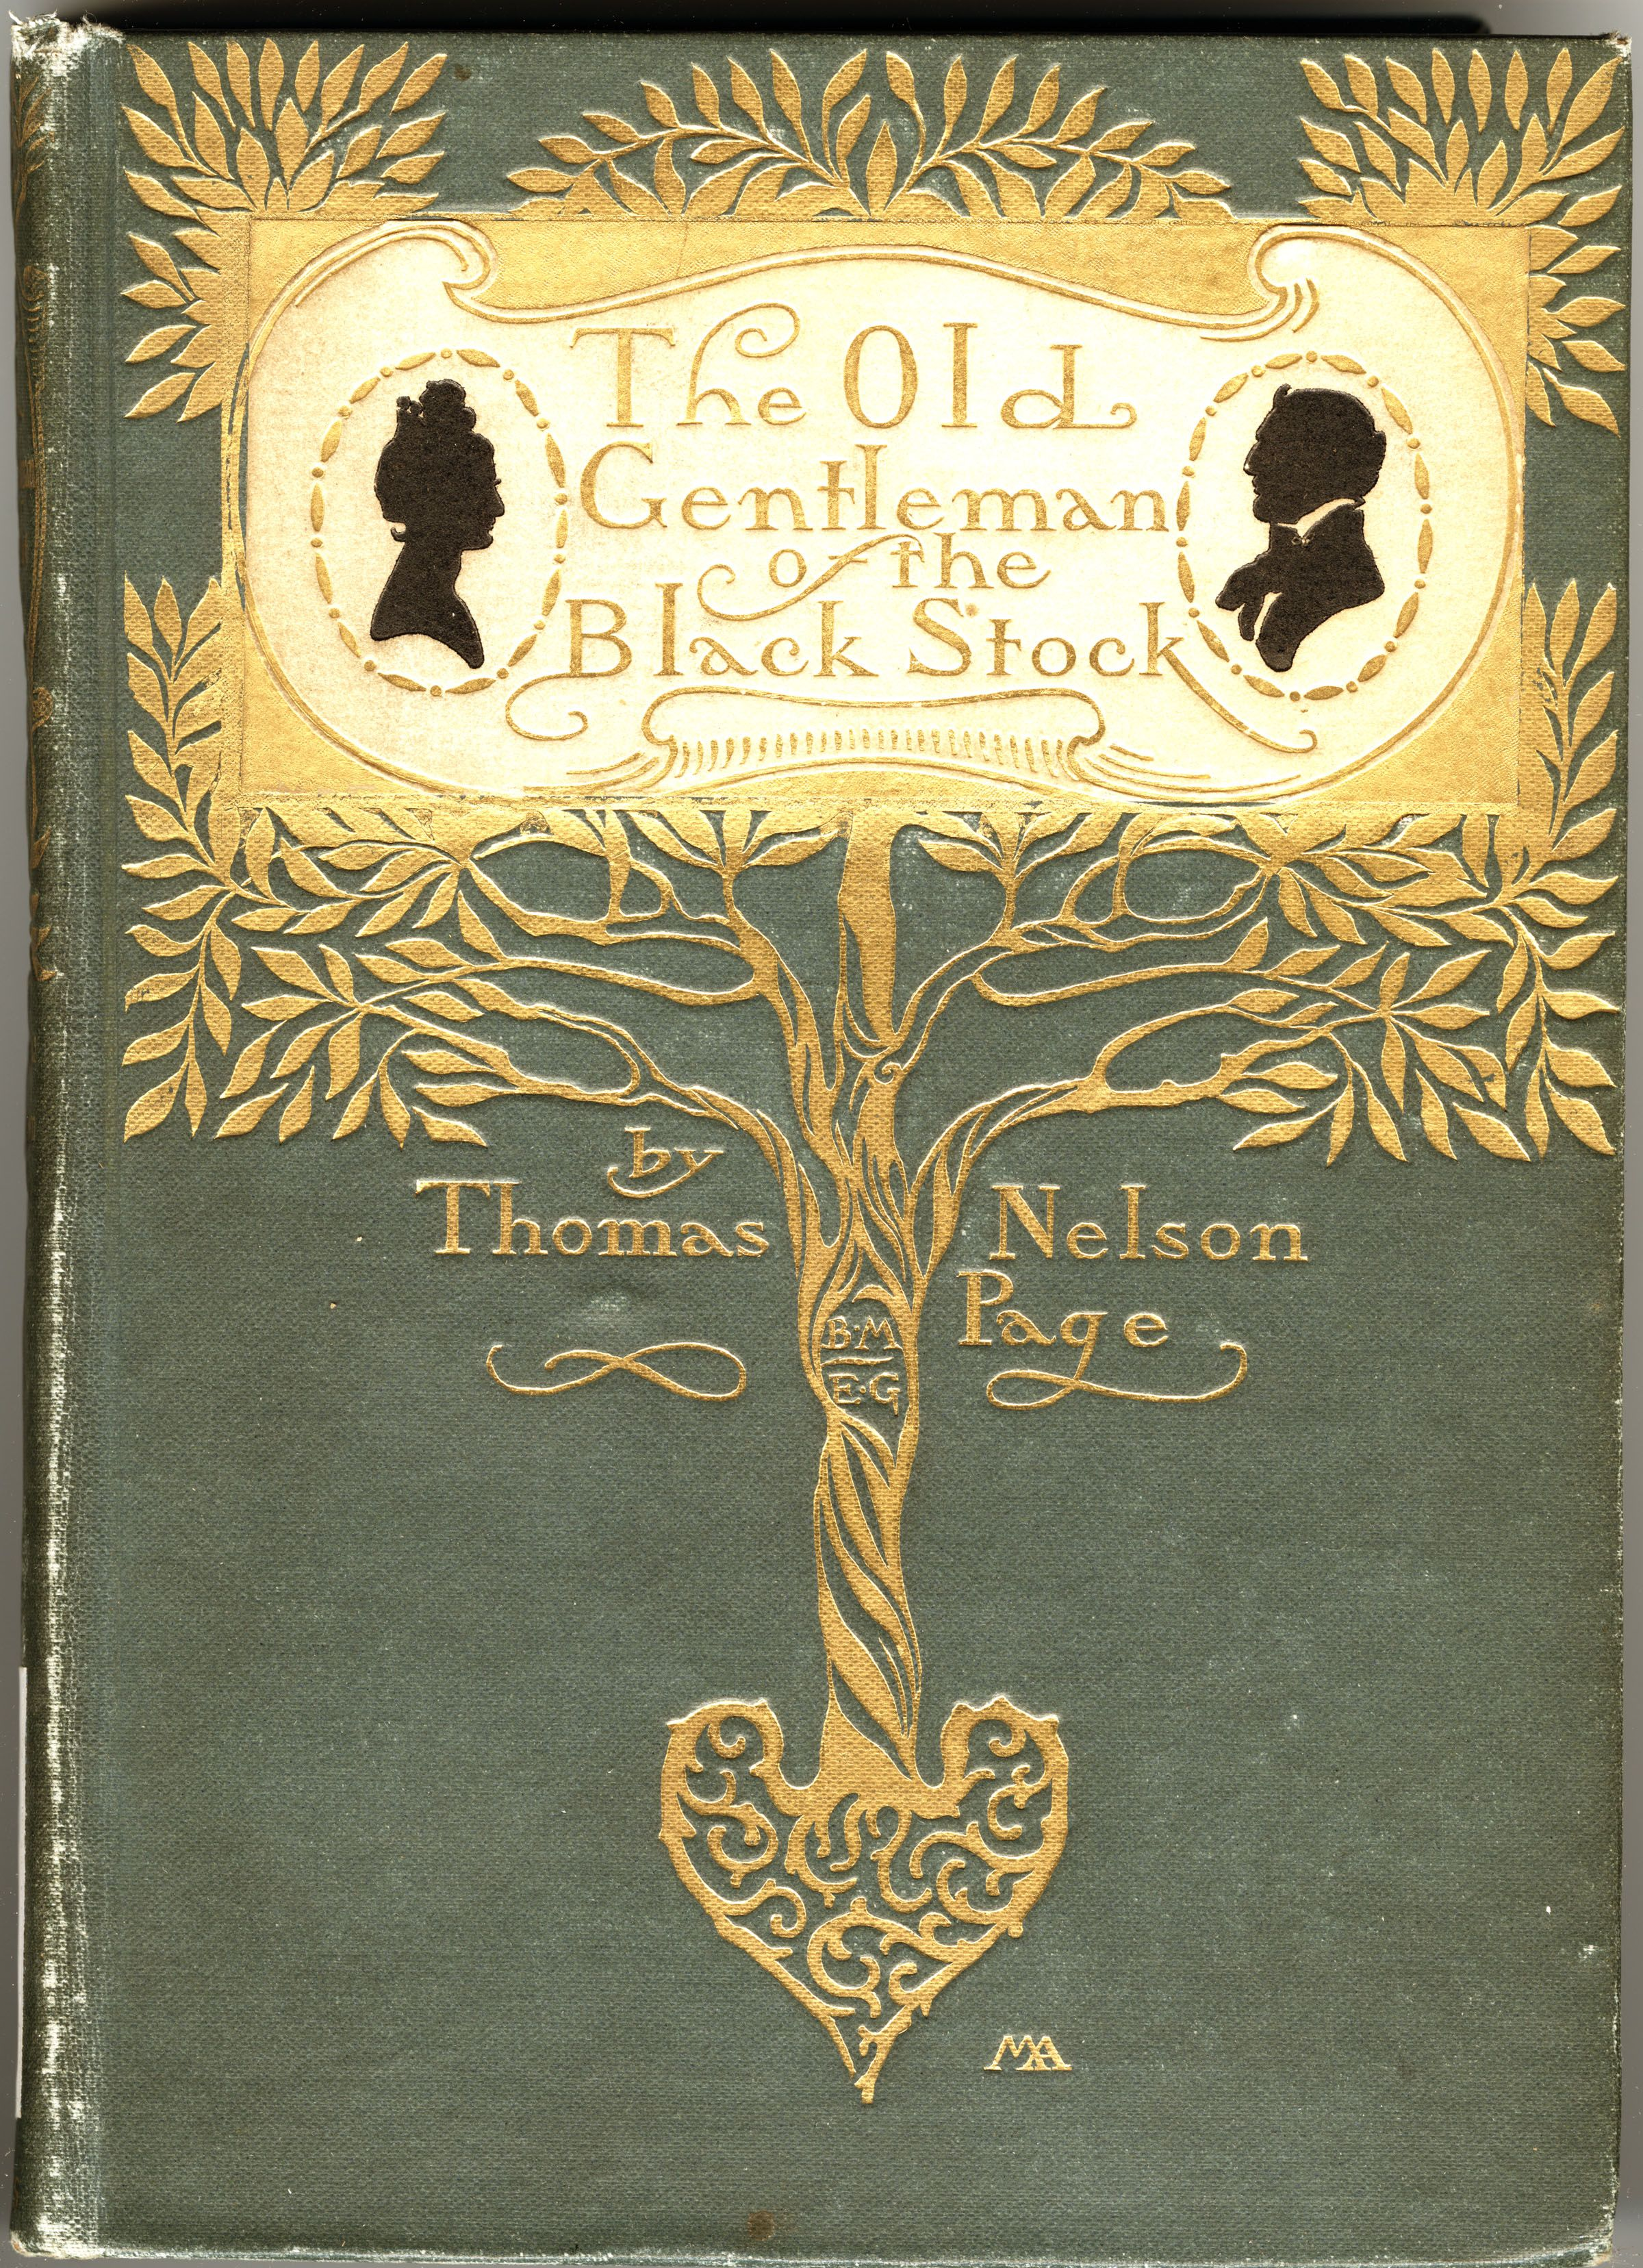 The Old Gentleman Of The Black Stock By Thomas Nelson Page Illustrated By Howard Chandler Christy Book Cover Art Book Cover Illustration Vintage Book Covers